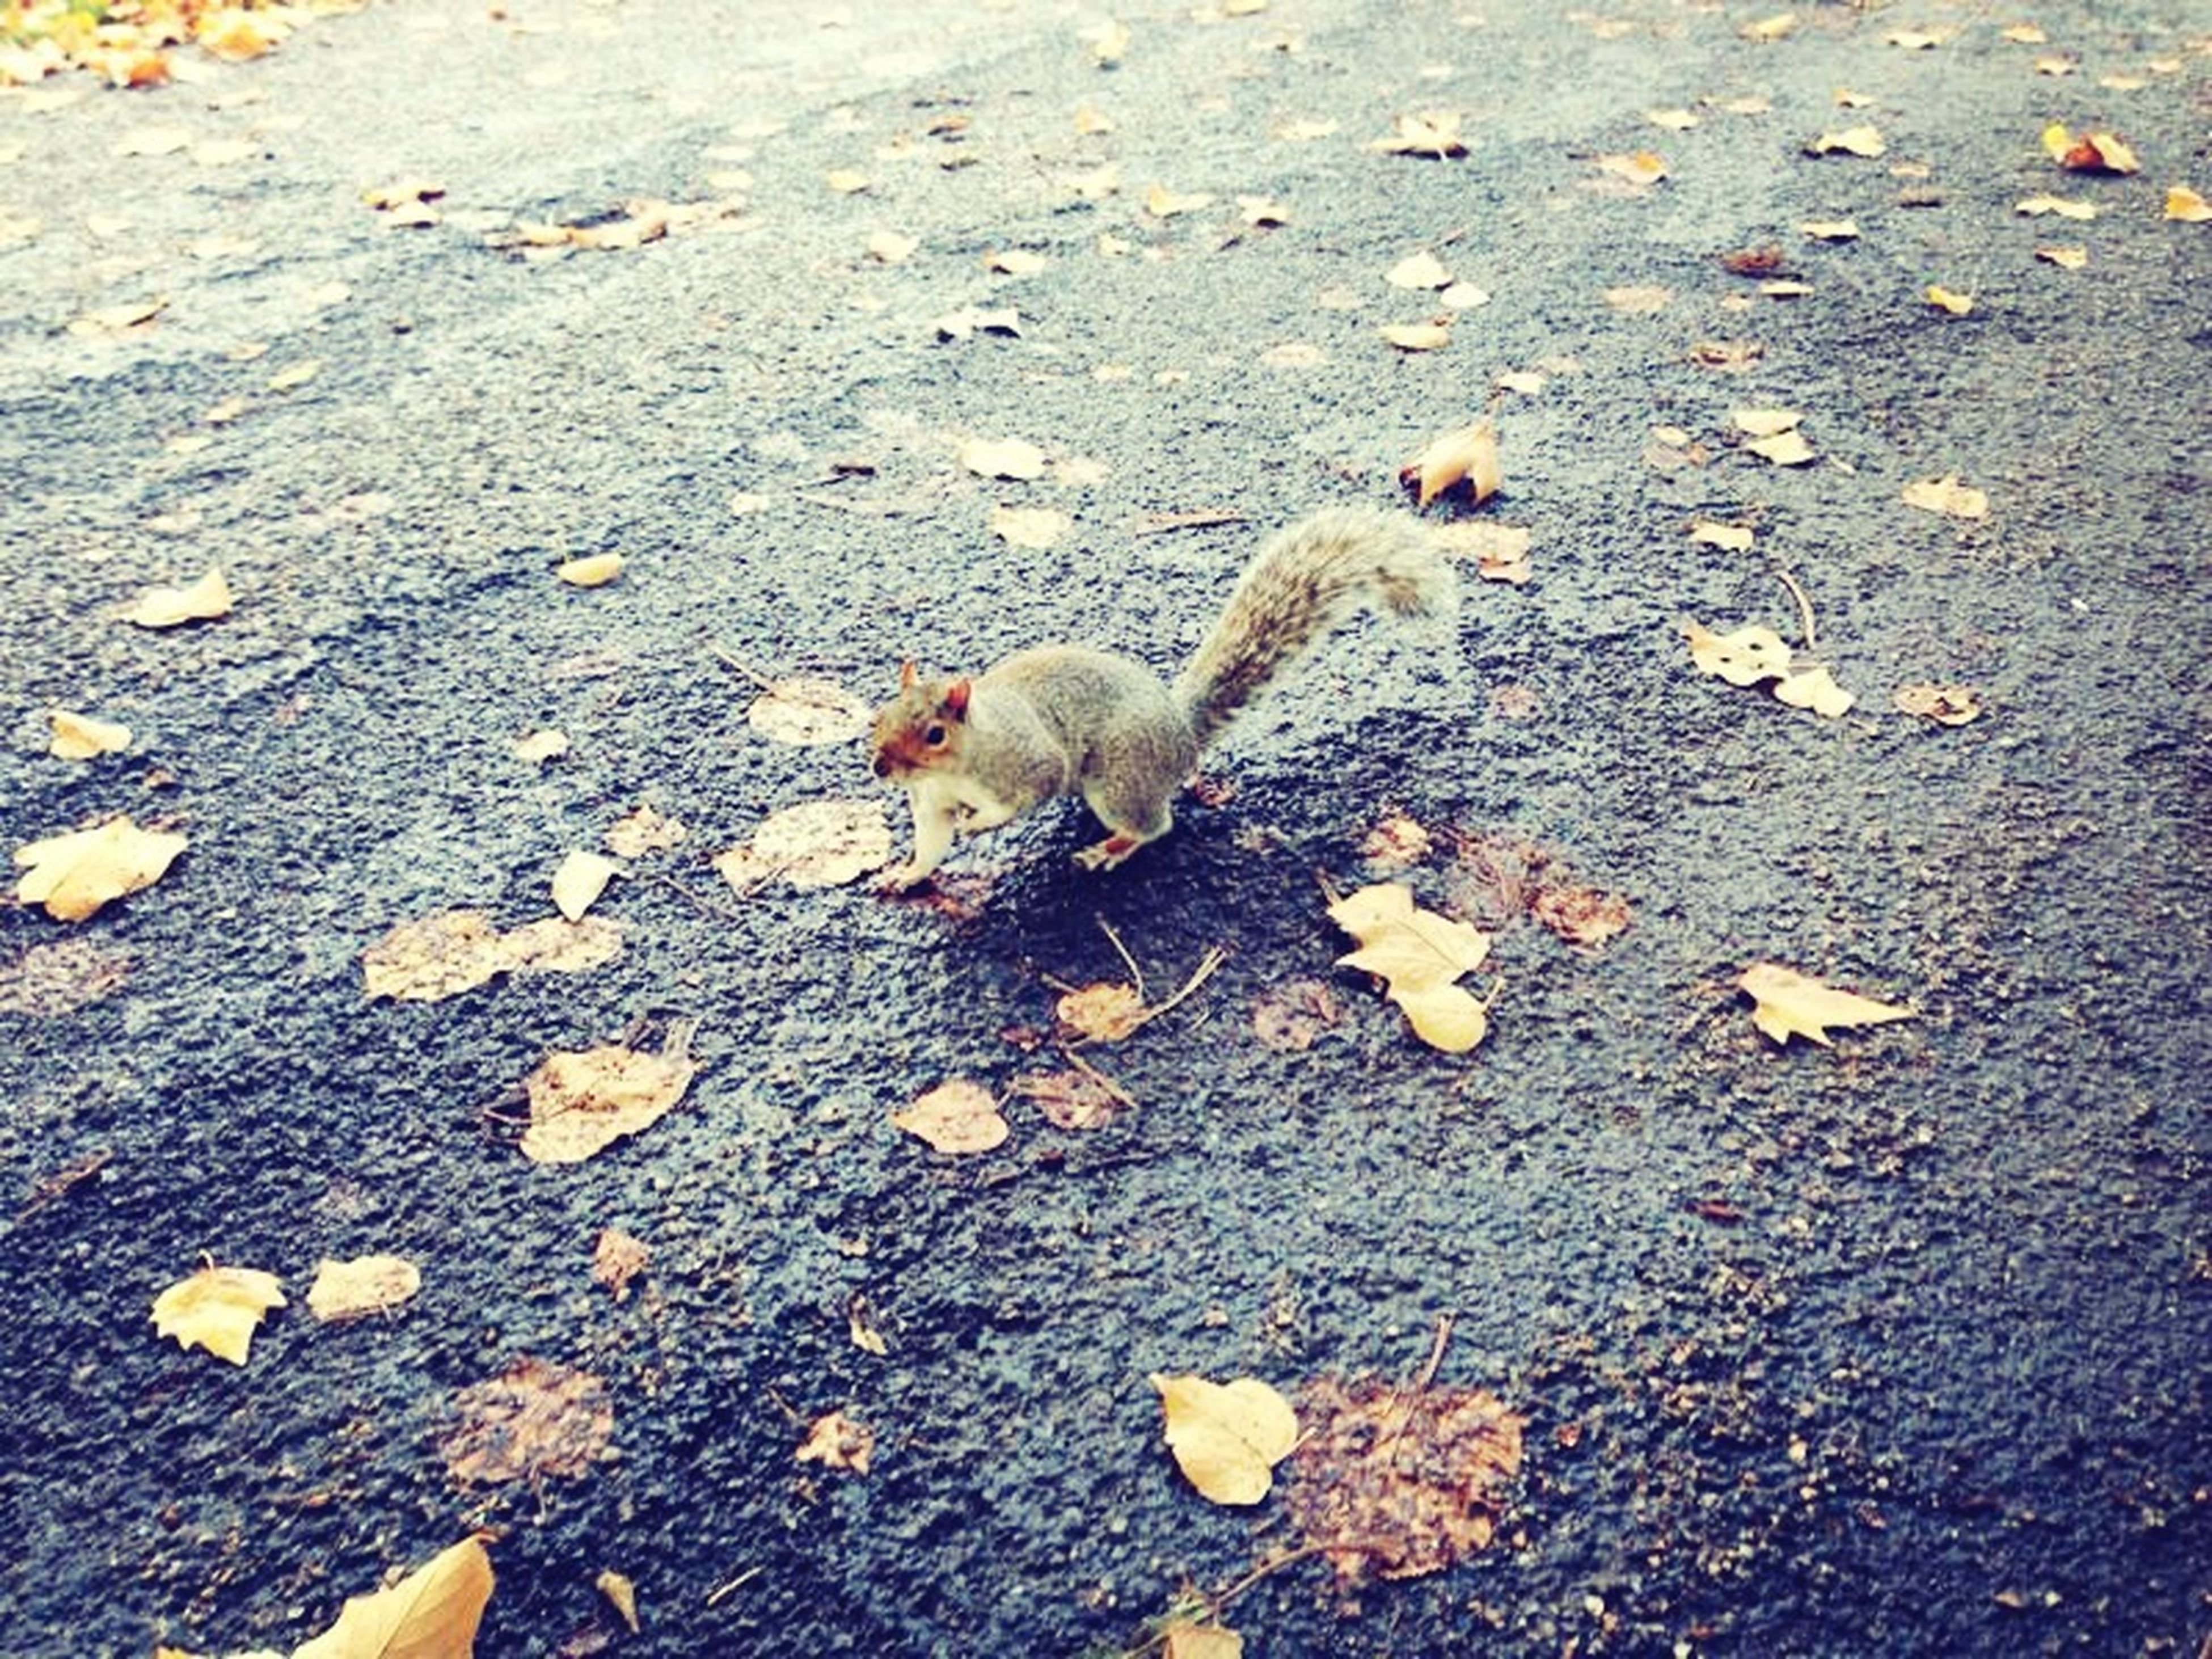 animal themes, high angle view, one animal, street, animals in the wild, wildlife, asphalt, day, ground, outdoors, nature, road, dry, no people, sunlight, leaf, field, dead animal, yellow, autumn